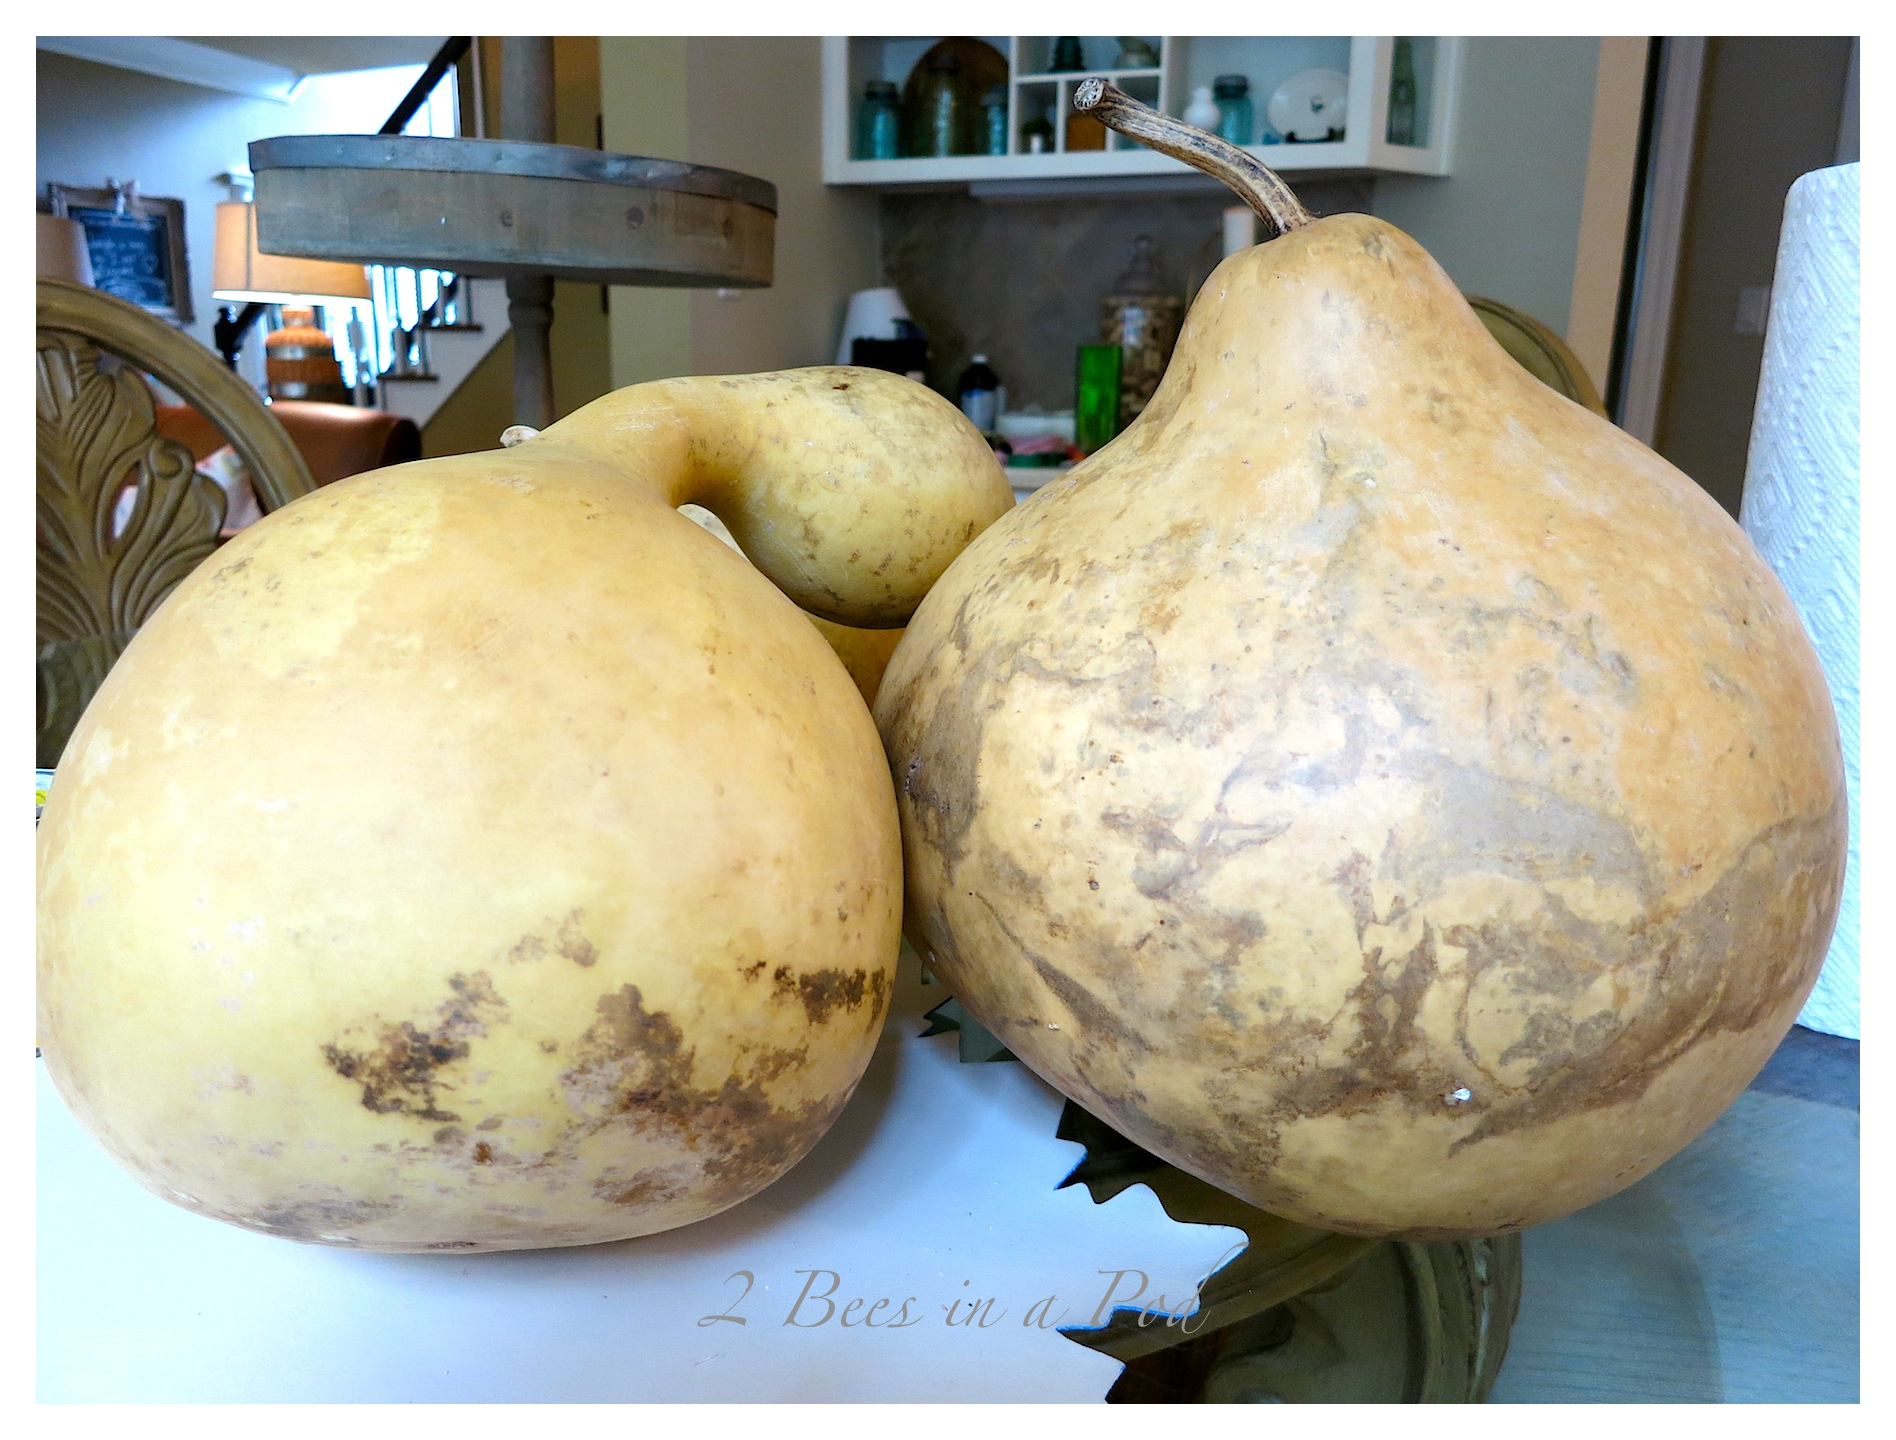 The natural gourds are beautiful, but were too light for Fall decor. With a little bit of stain, it really makes them pop.